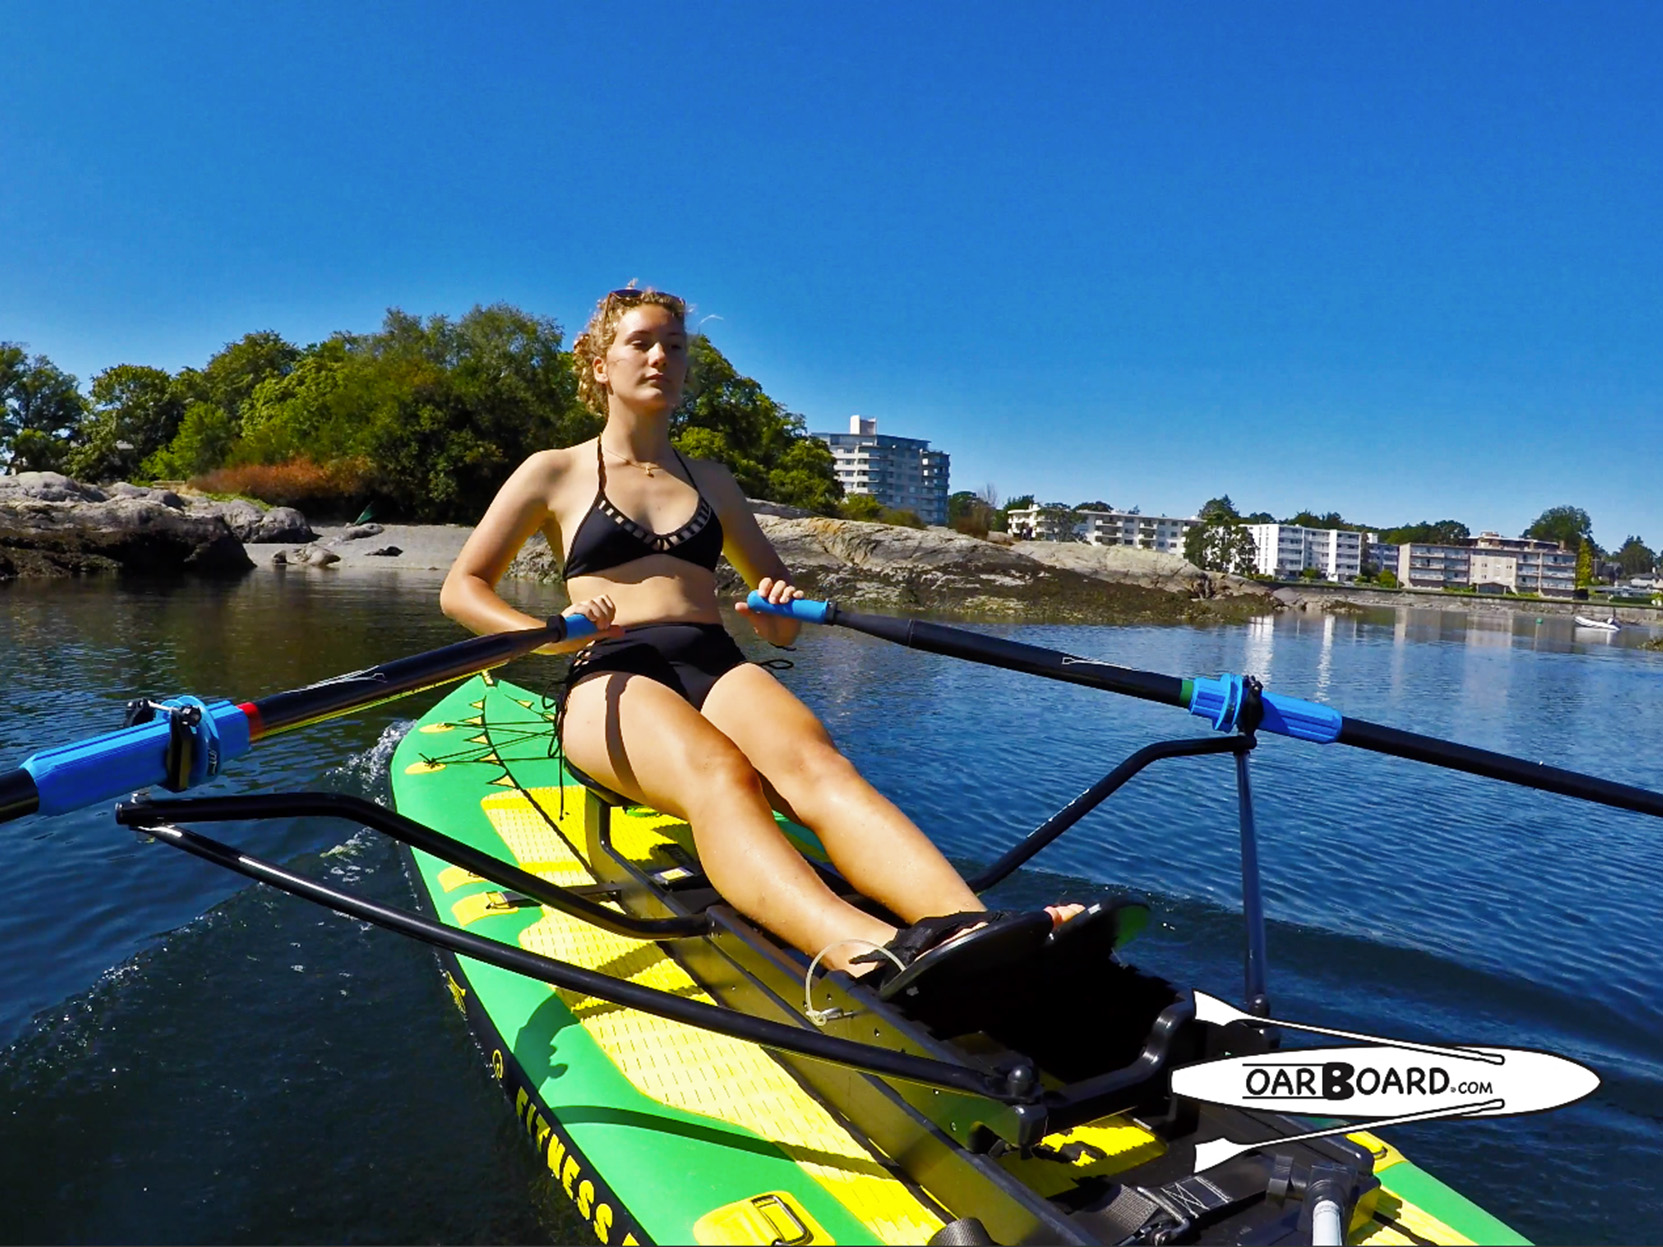 oar-board-stand-up-paddle-board-rower-whitehall-rowing-and-sail-Kess-Blog-5